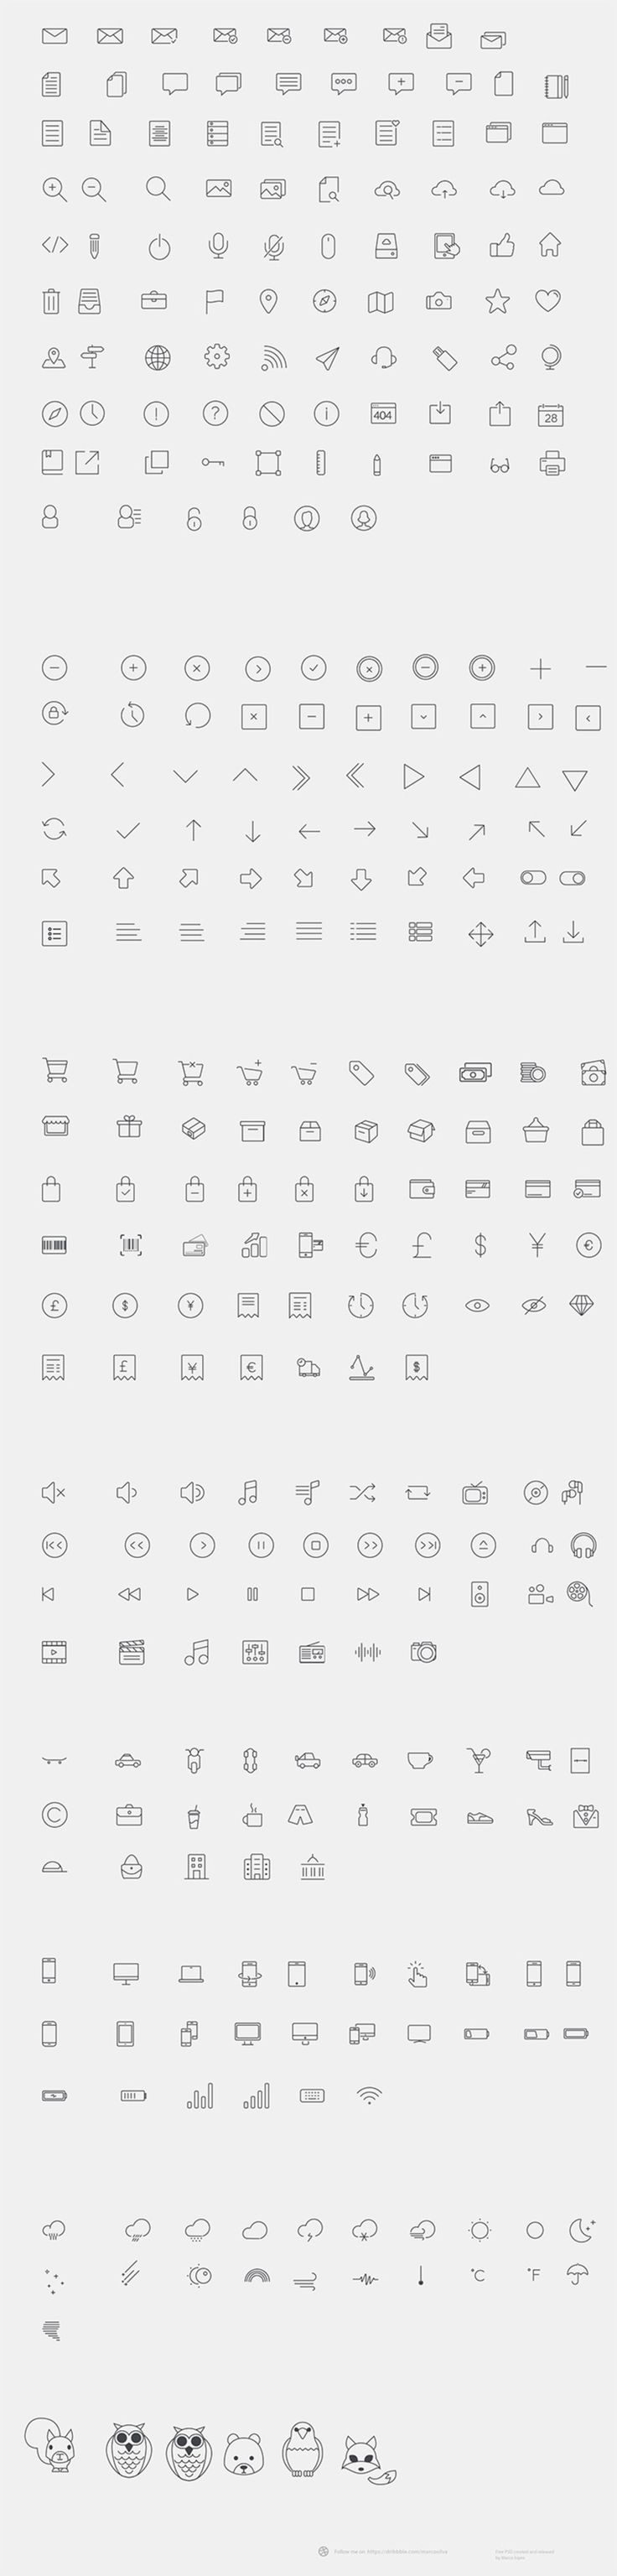 """For today we have a real icon collection created with vector shapes and retina ready. The icons are designed by <strong><a target=""""_blank"""" href=""""http://marcosilva.co.uk/"""">Marco Lopes</a>. </strong>In this great pack you will find weather icons, gadgets, arrows, locations and download icons. Enjoy!"""